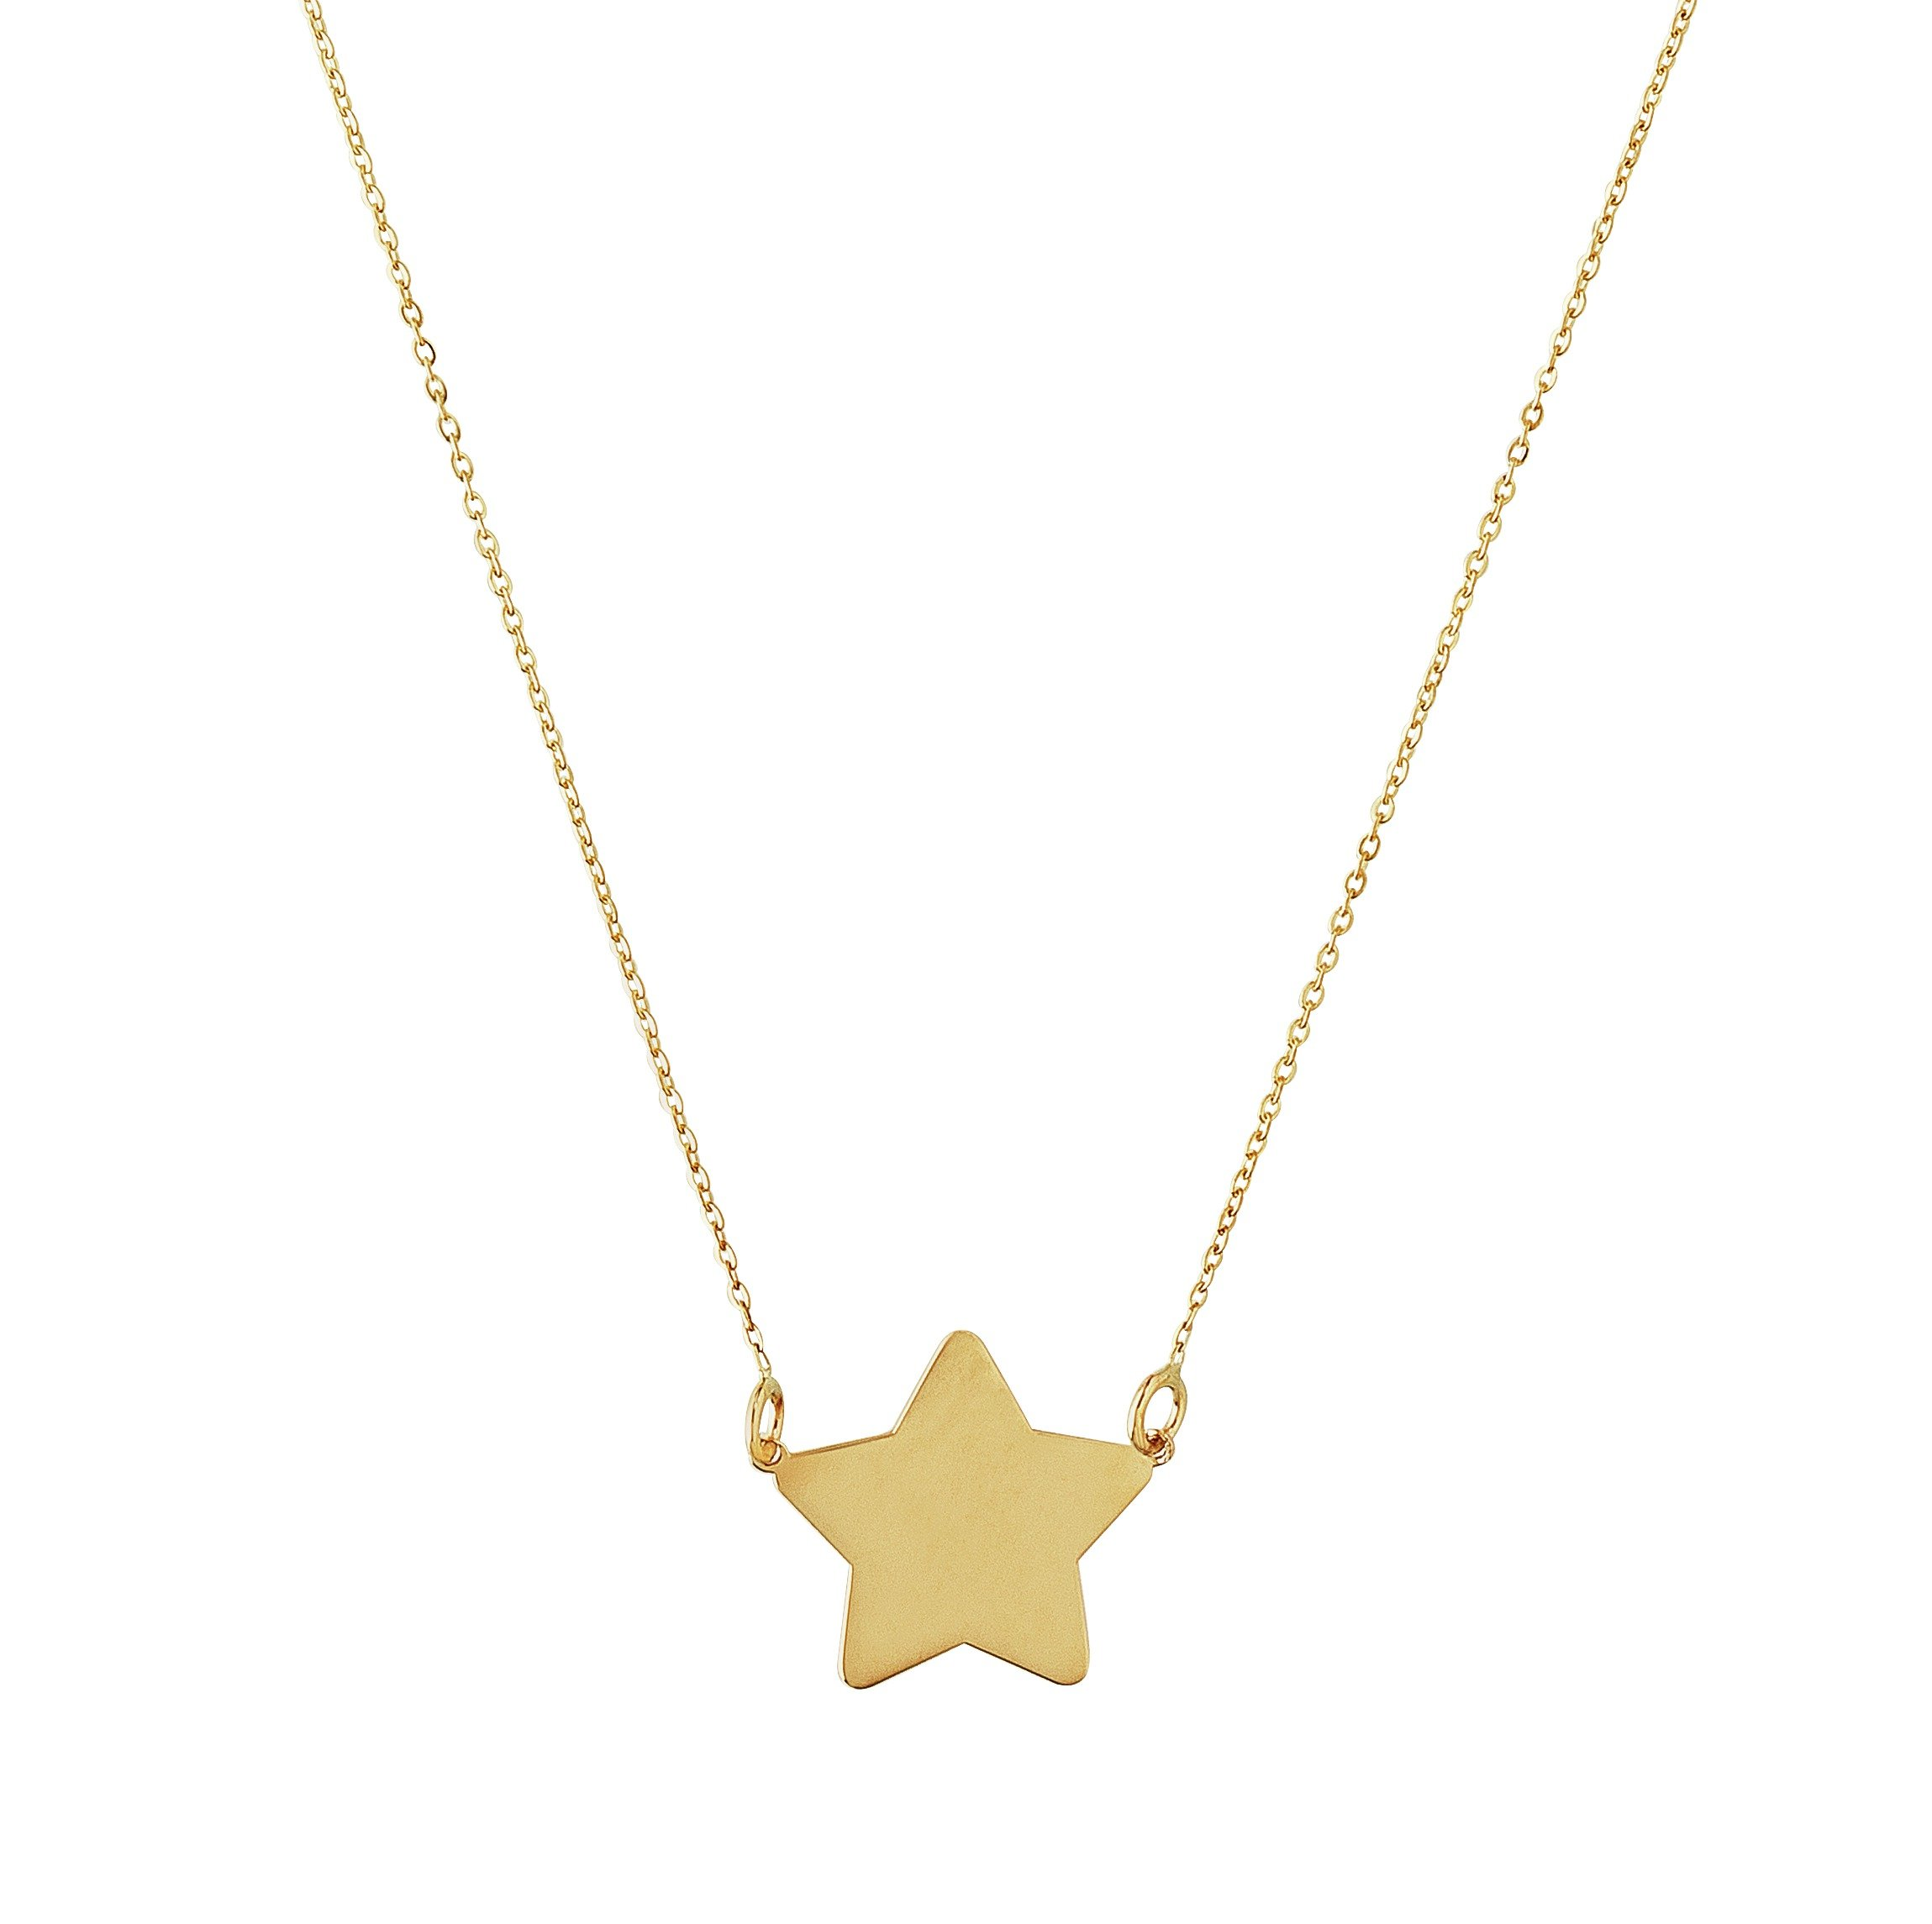 Image of Revere 9ct Gold Star Pendant